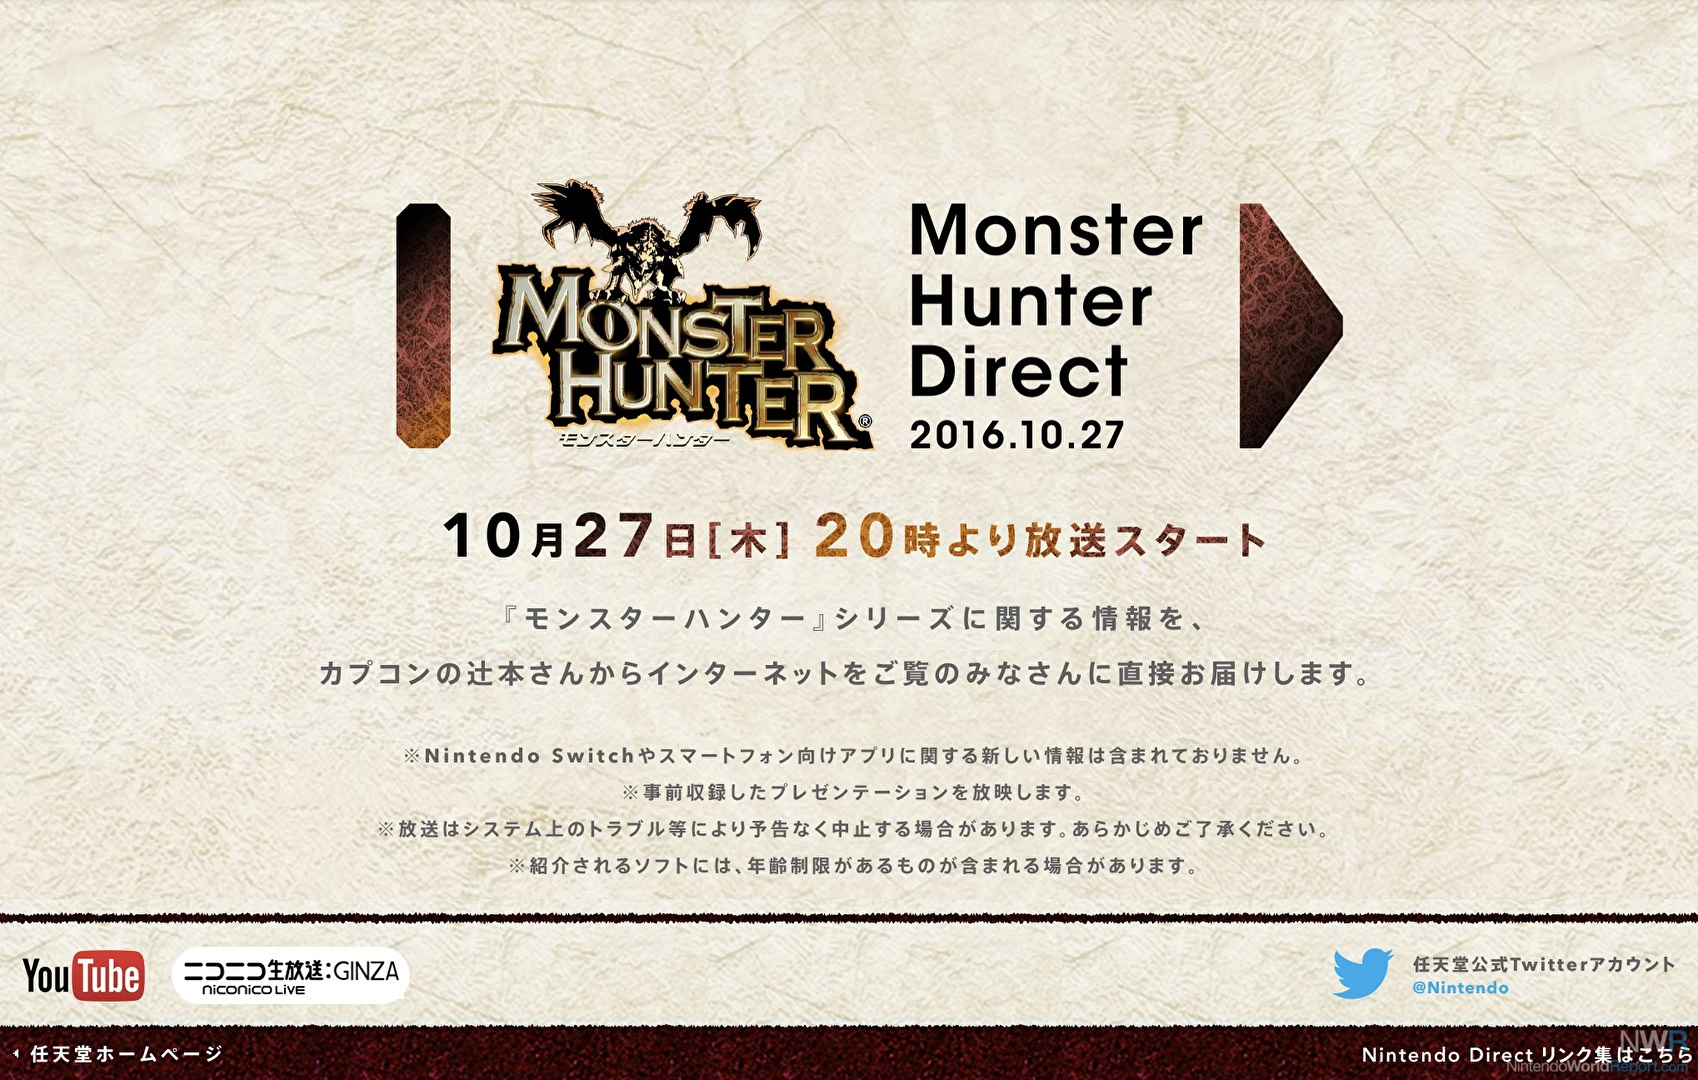 Nintendo Announces Monster Hunter Direct Event